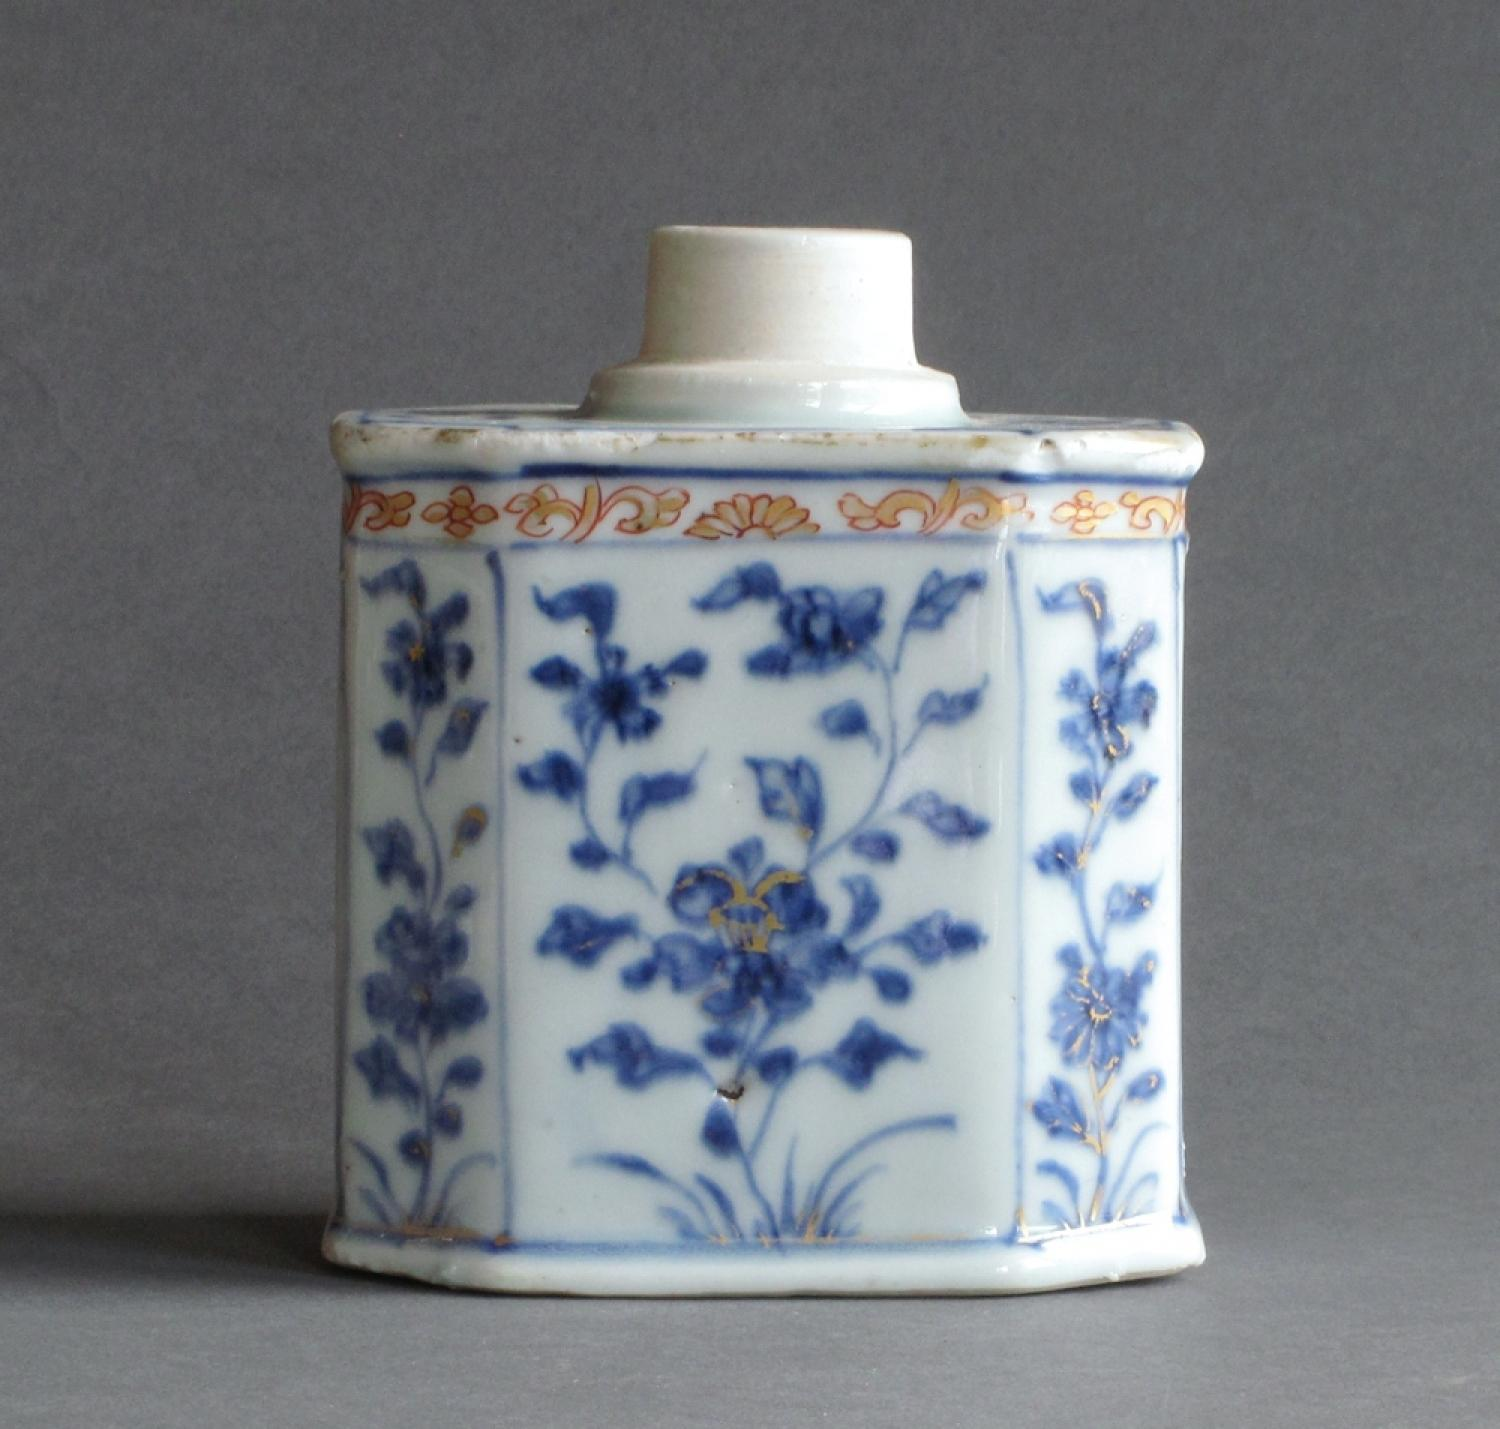 Chinese export tea canister c1720-35